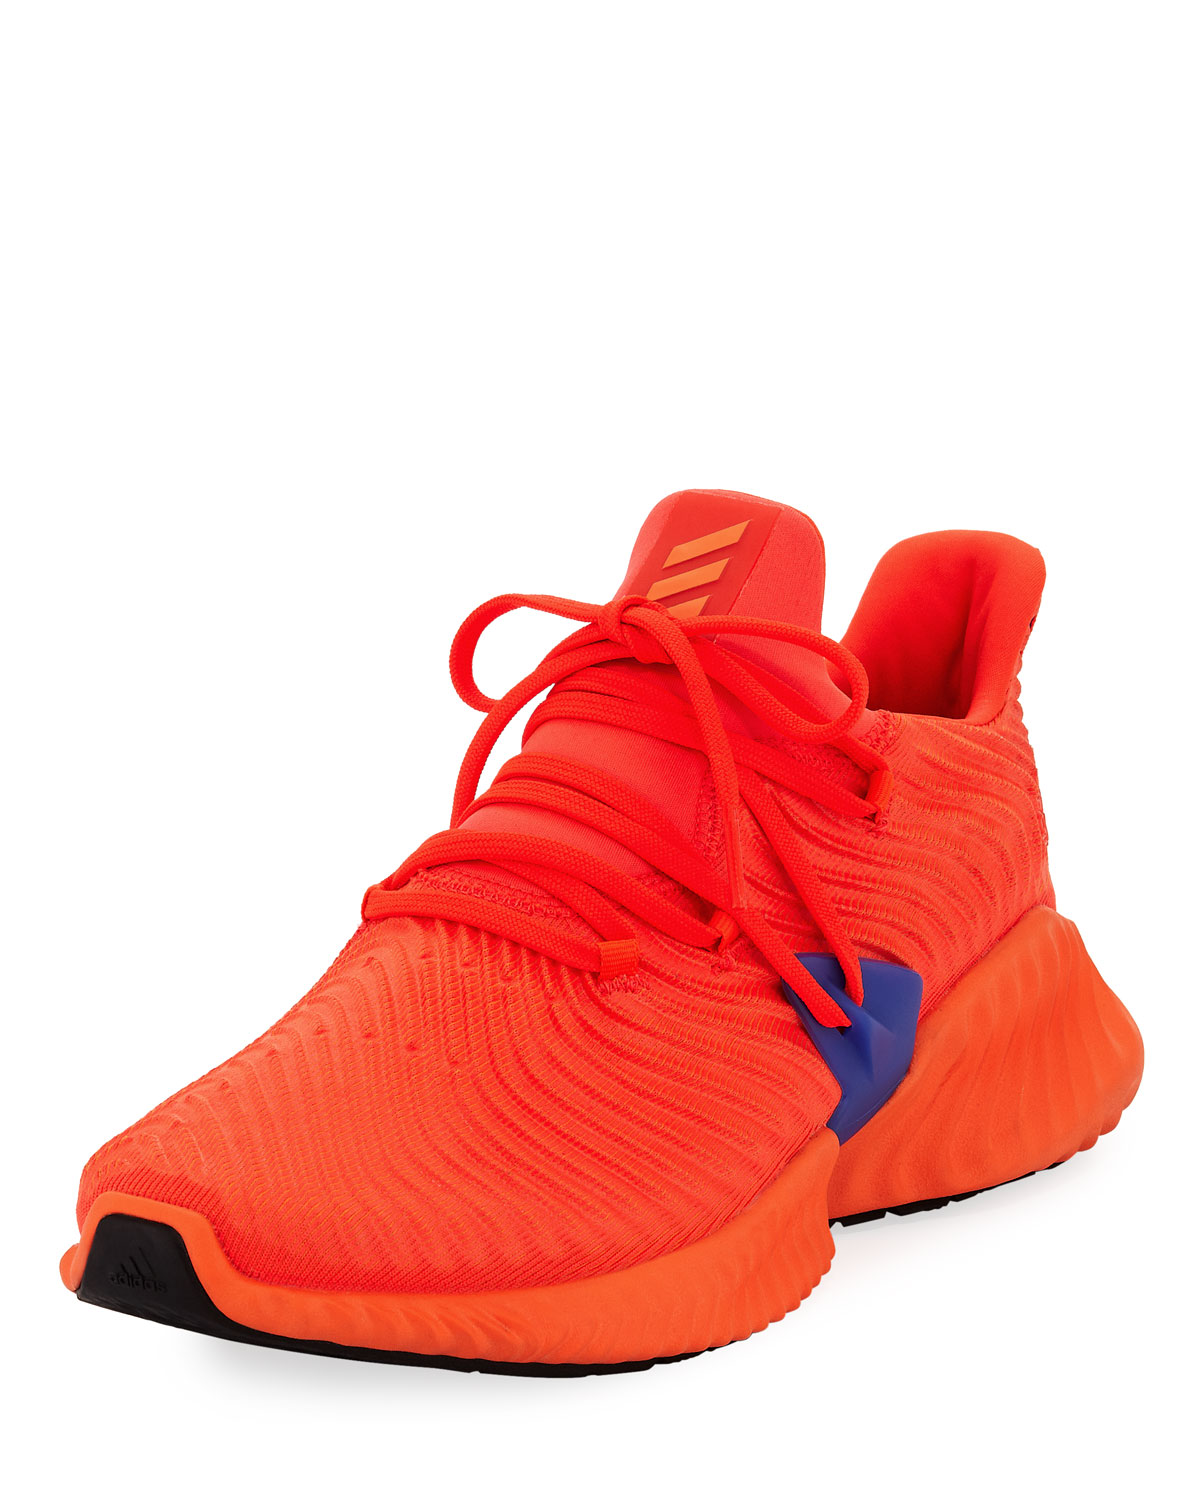 f0844679be382 Adidas AlphaBounce Instinct Trainer Sneaker